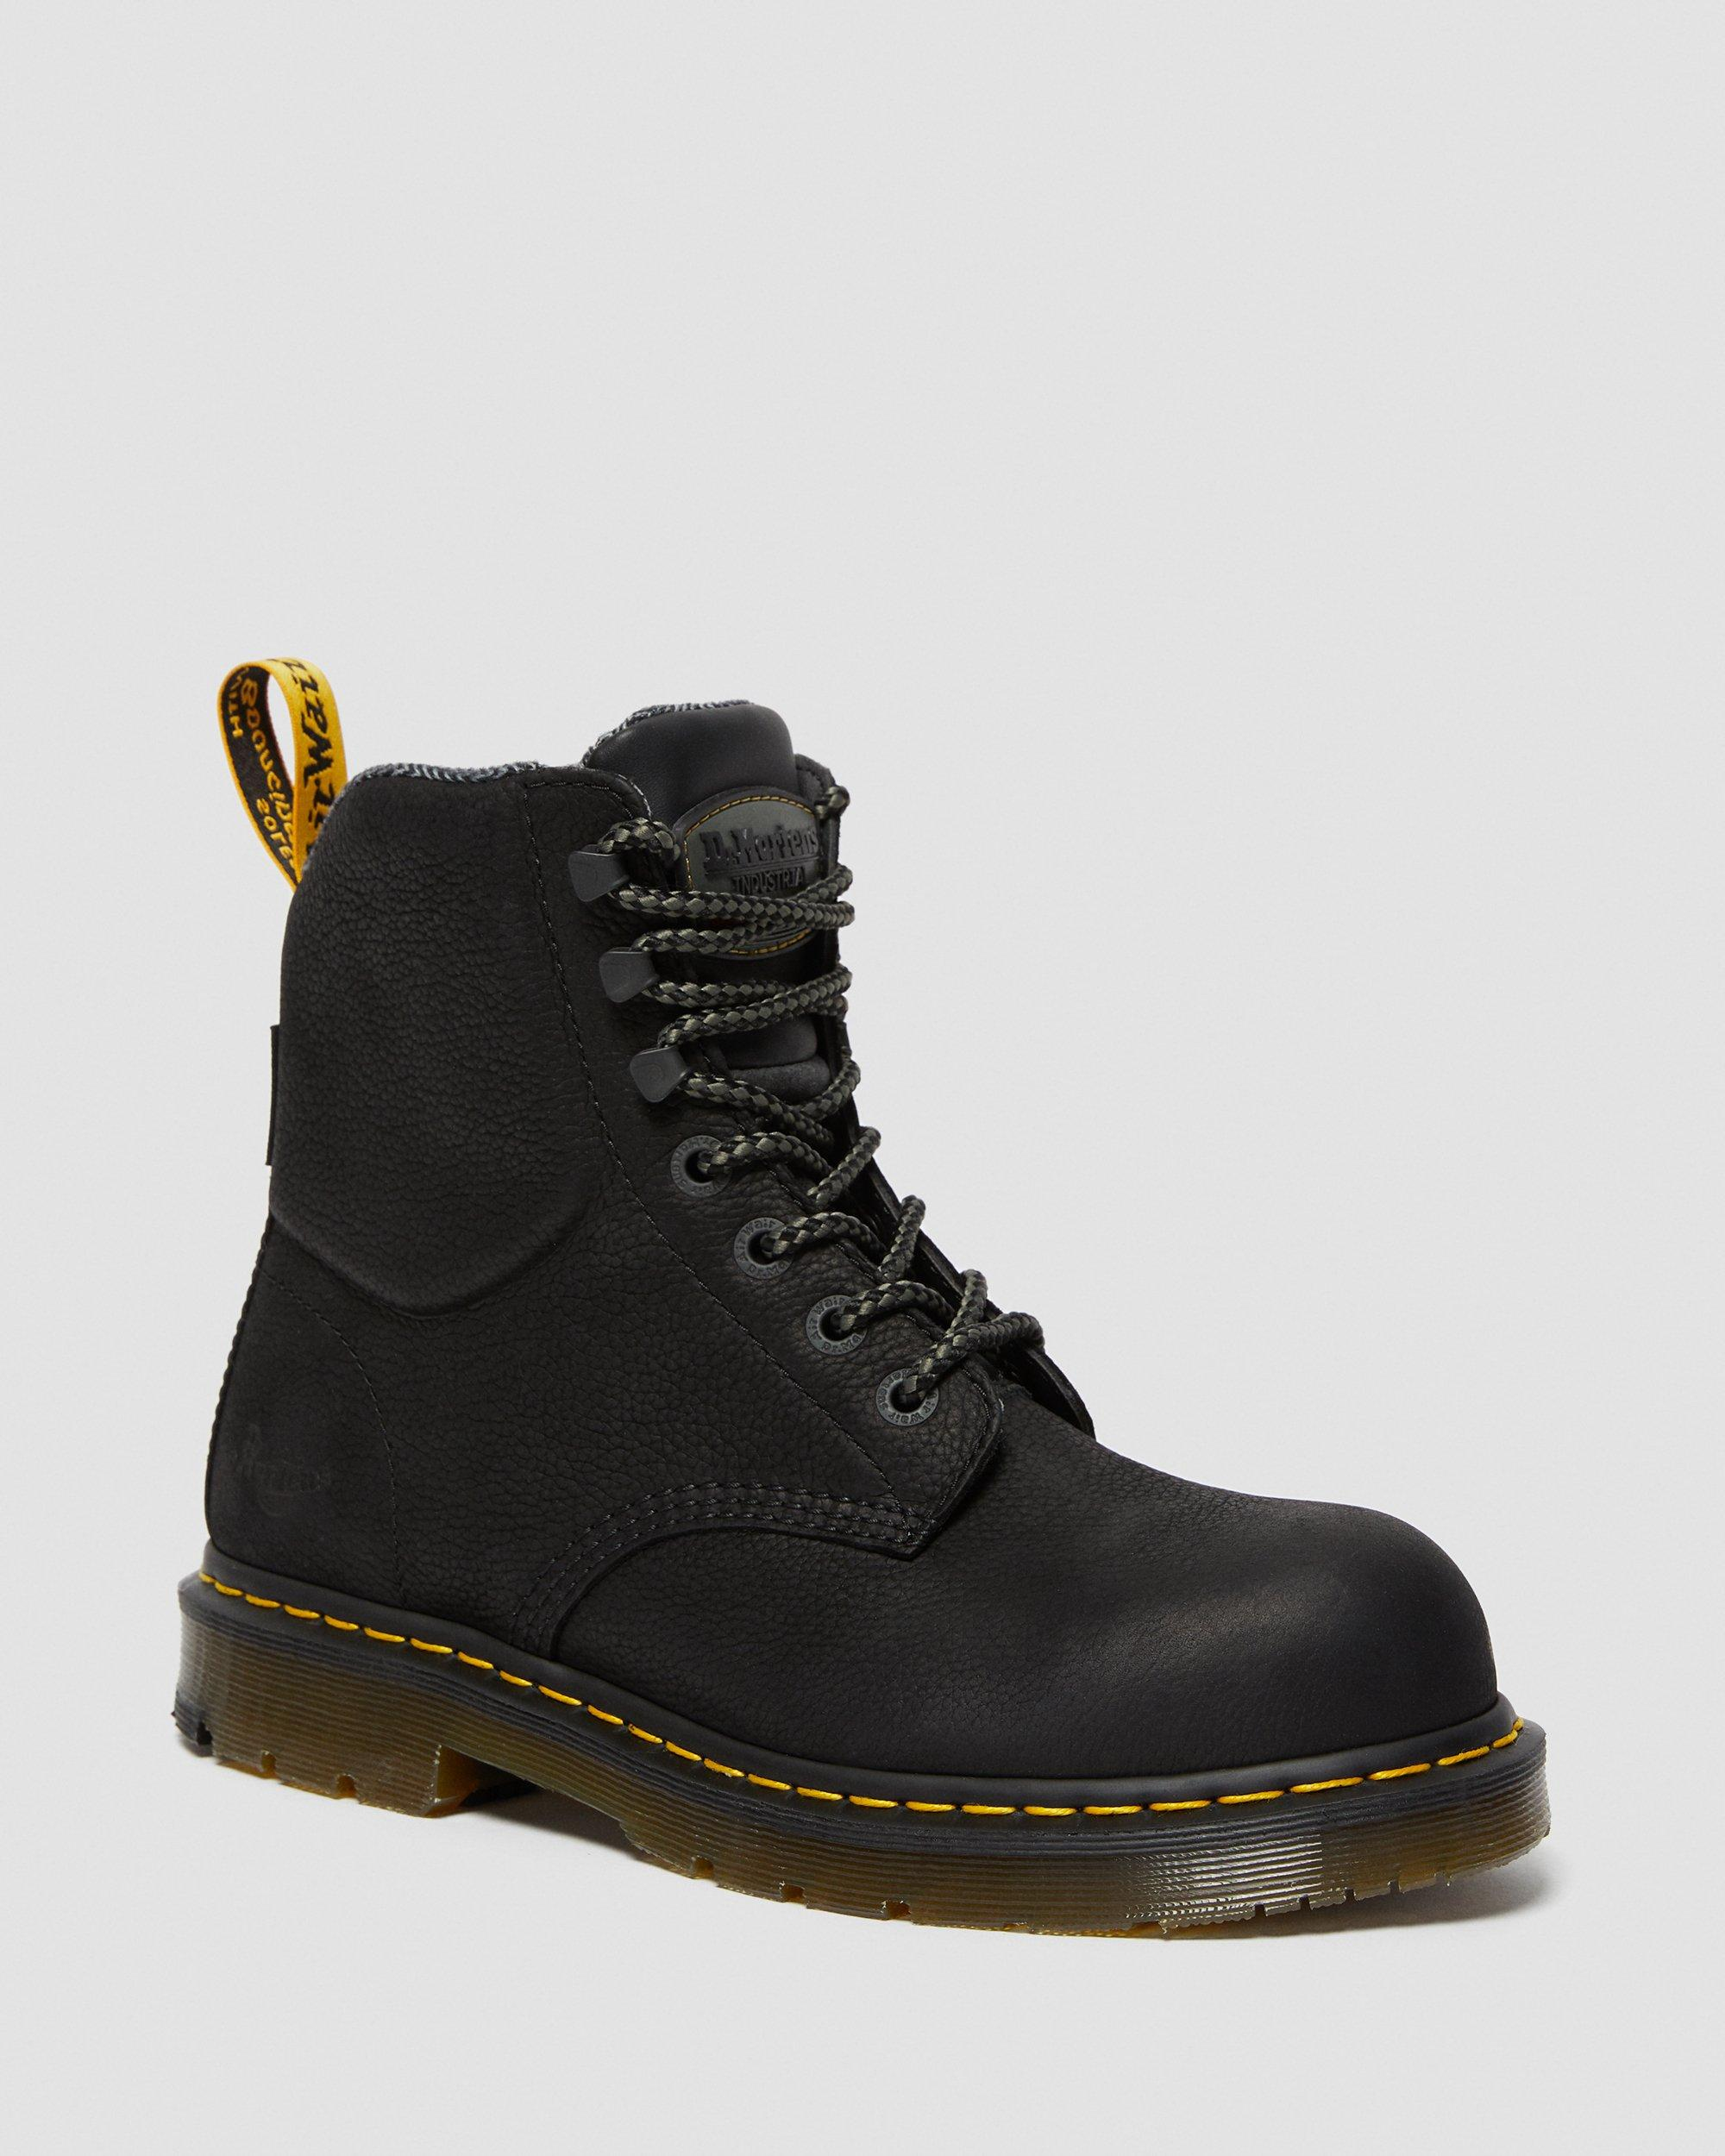 dr martens safety boots